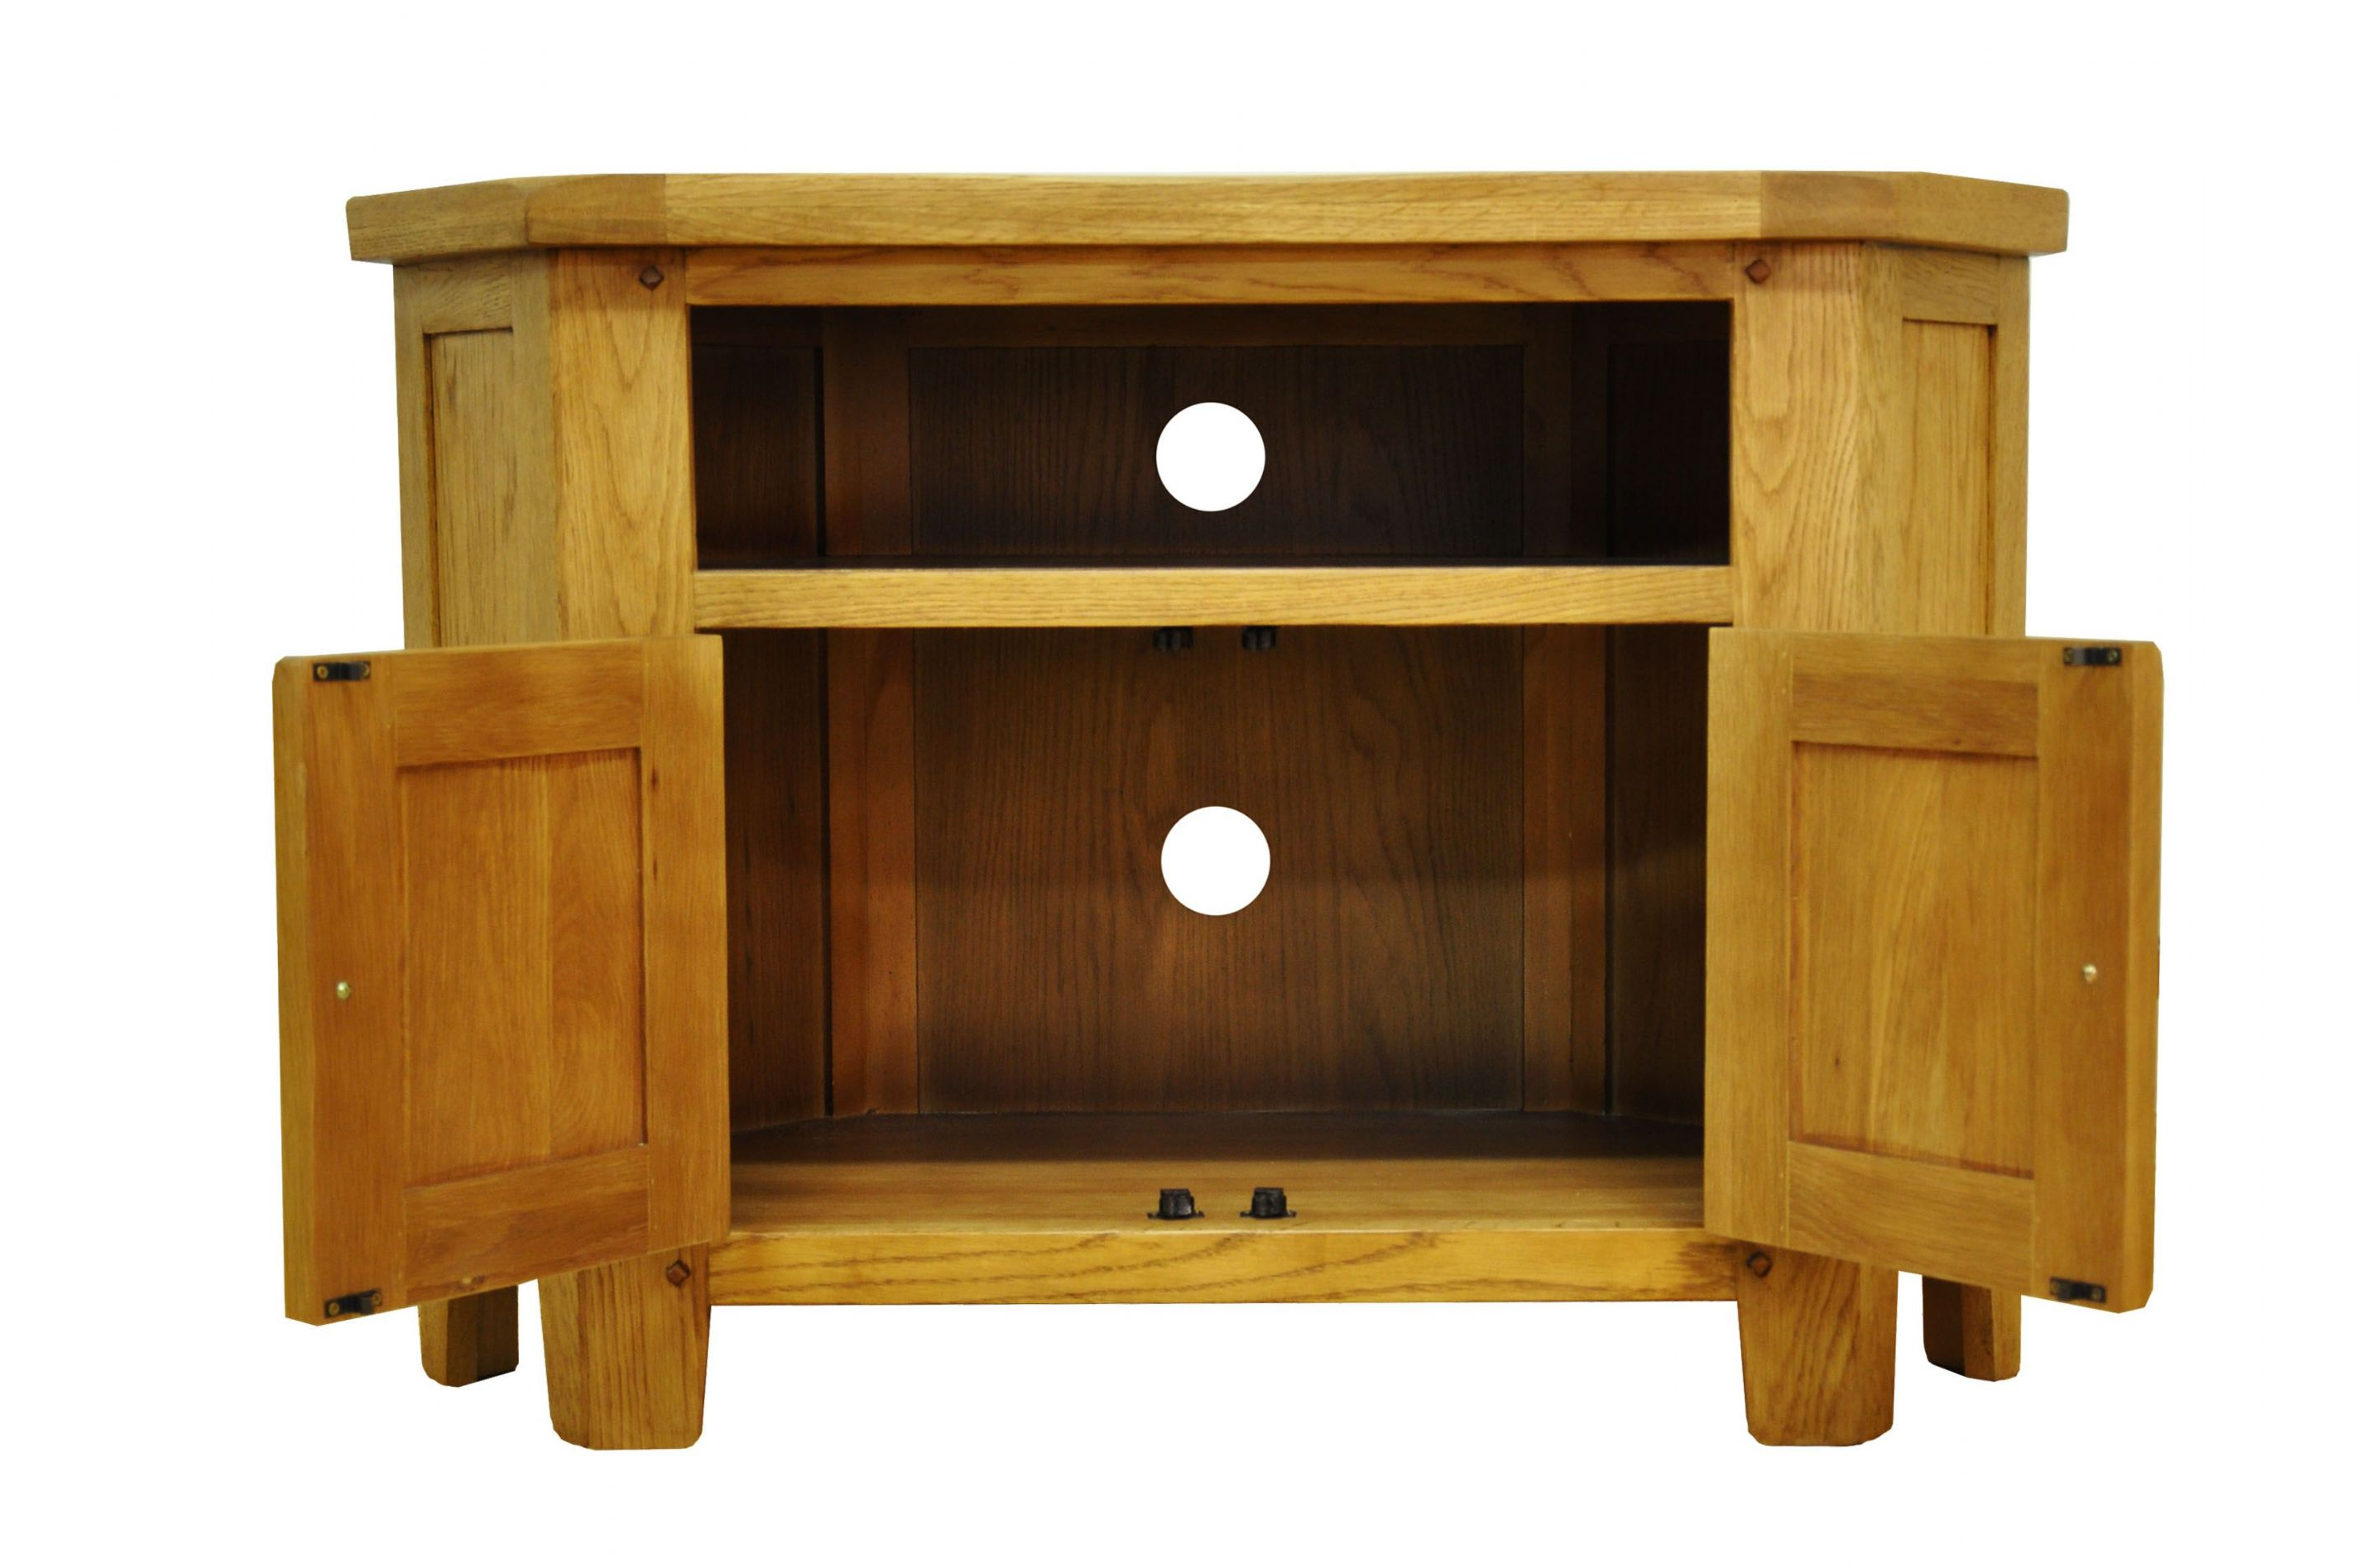 Oak Tv Cabinets For Flat Screens For Most Up To Date Oak Tv Stand Walmart Solid Wood Stands For Flat Screens Light (Gallery 18 of 20)